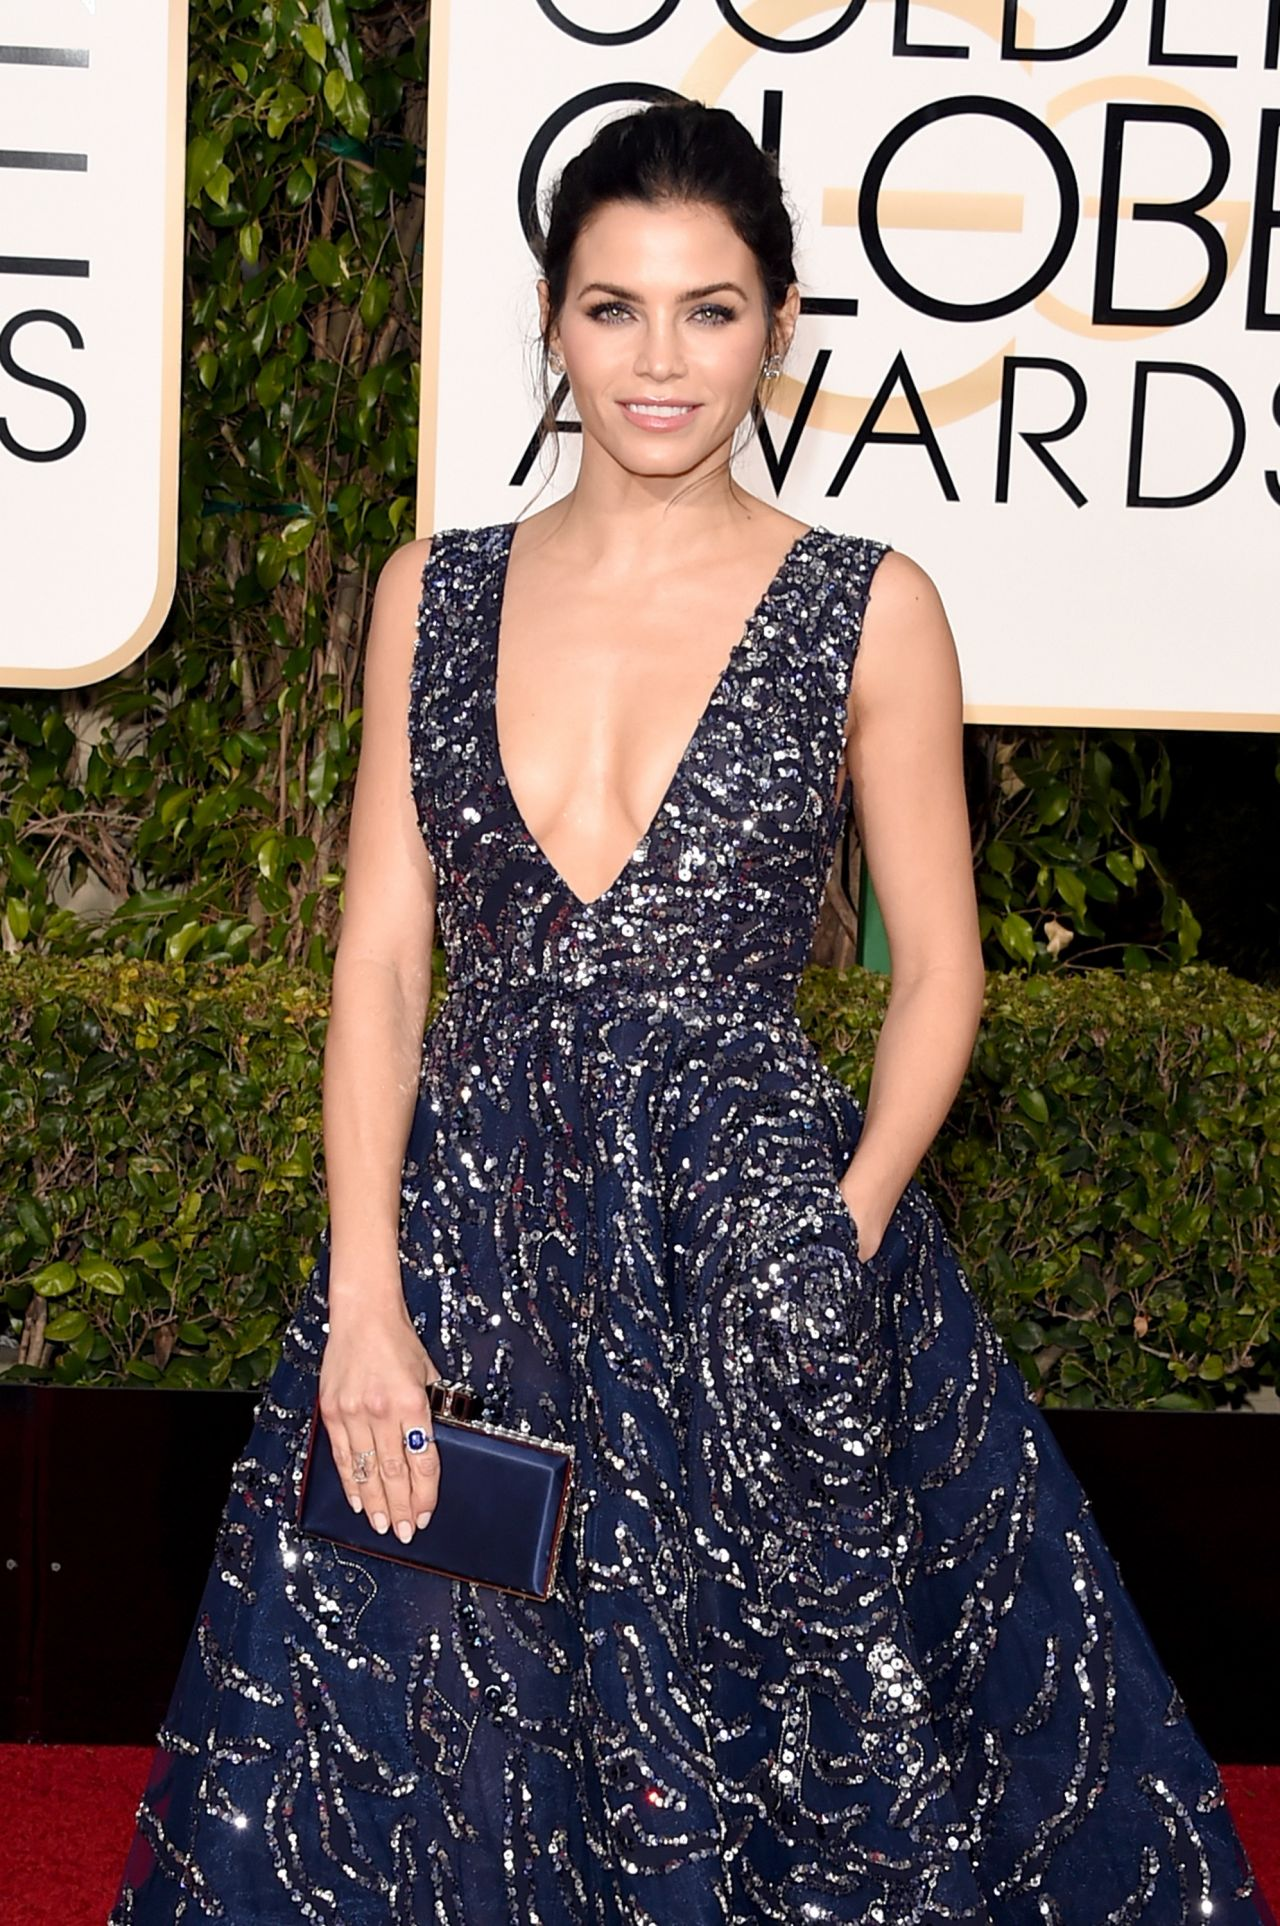 jenna-dewan-tatum-2016-golden-globe-awards-in-beverly-hills-8